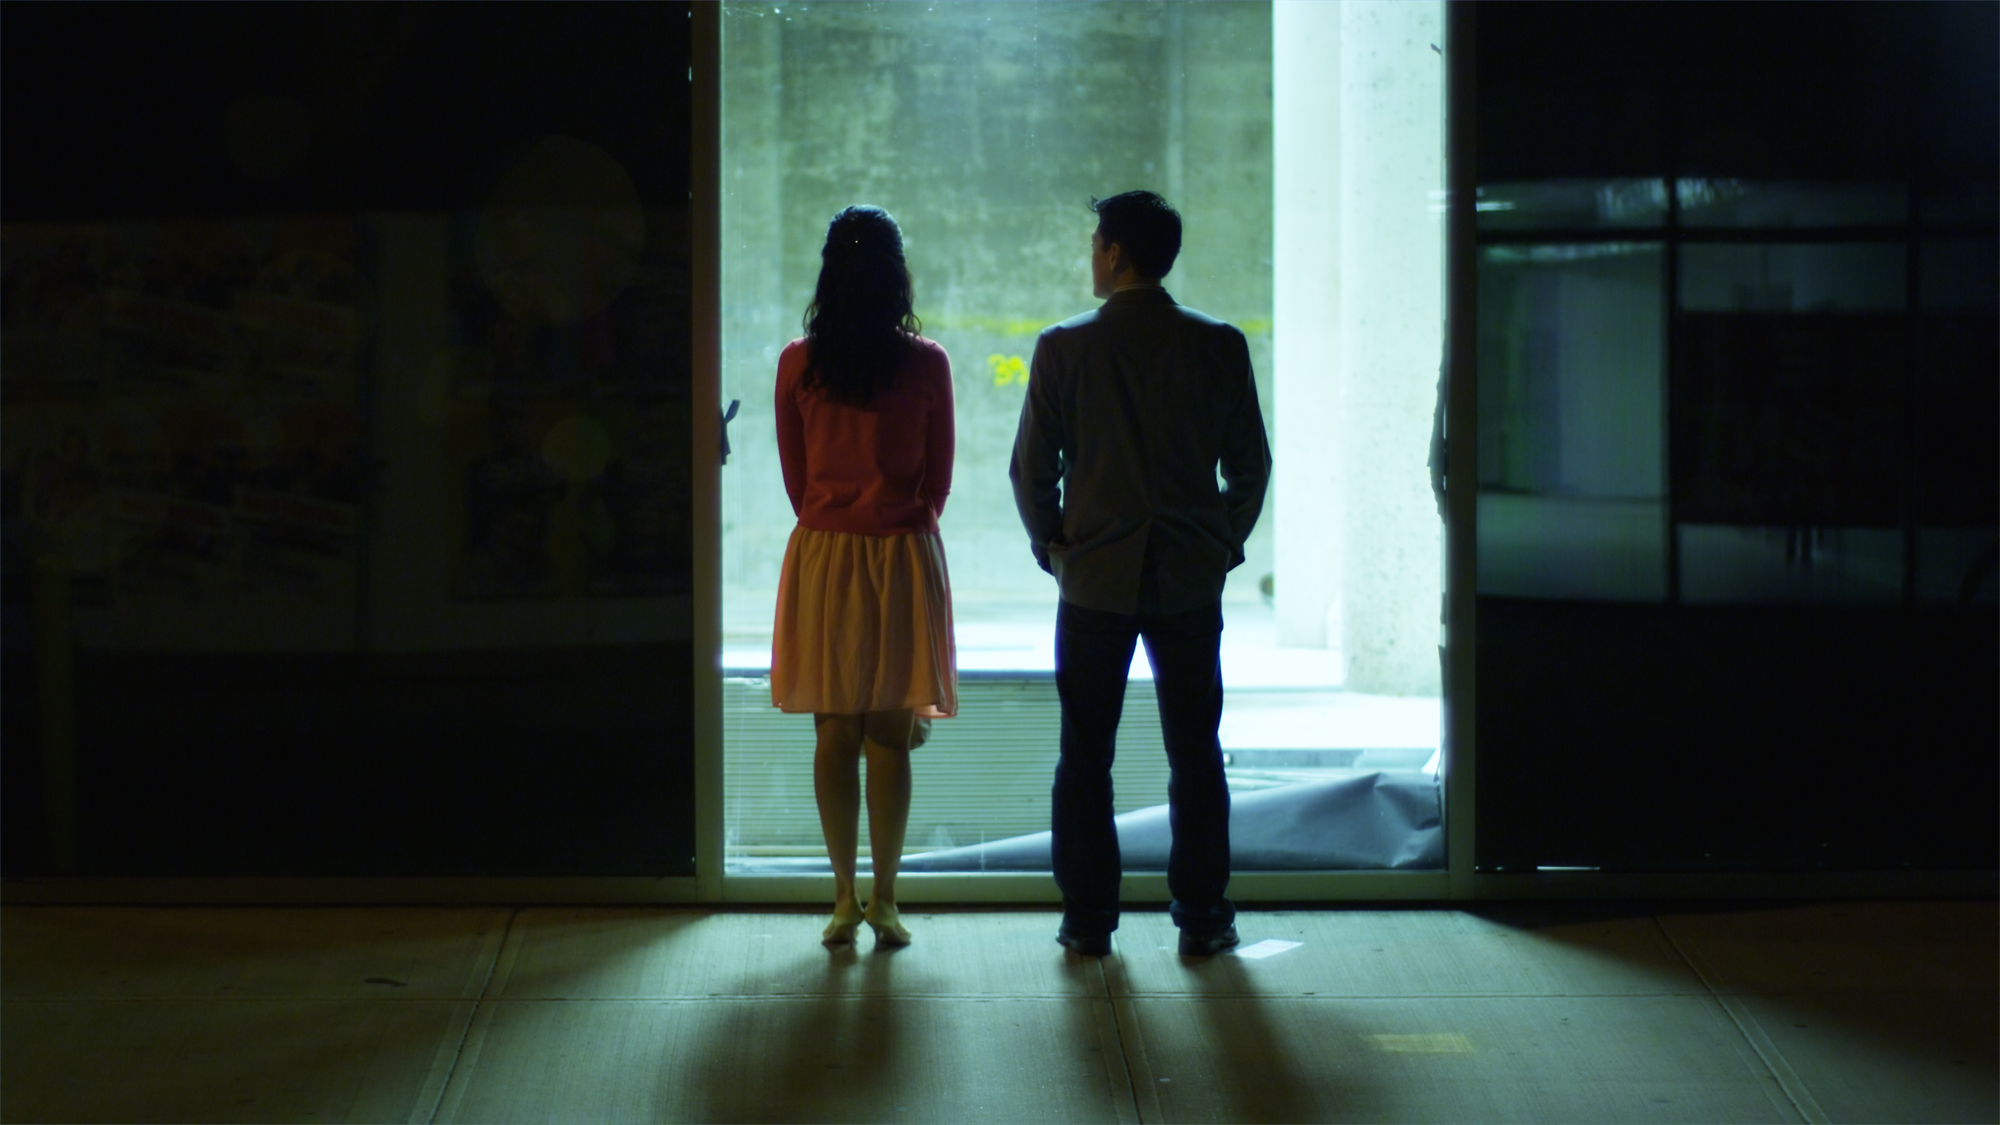 Sara Kim and Paul Juhn in Works of Art; Written by Paul Juhn; Cinematographer - Ramsey Fendall; Director - Andrew Pang